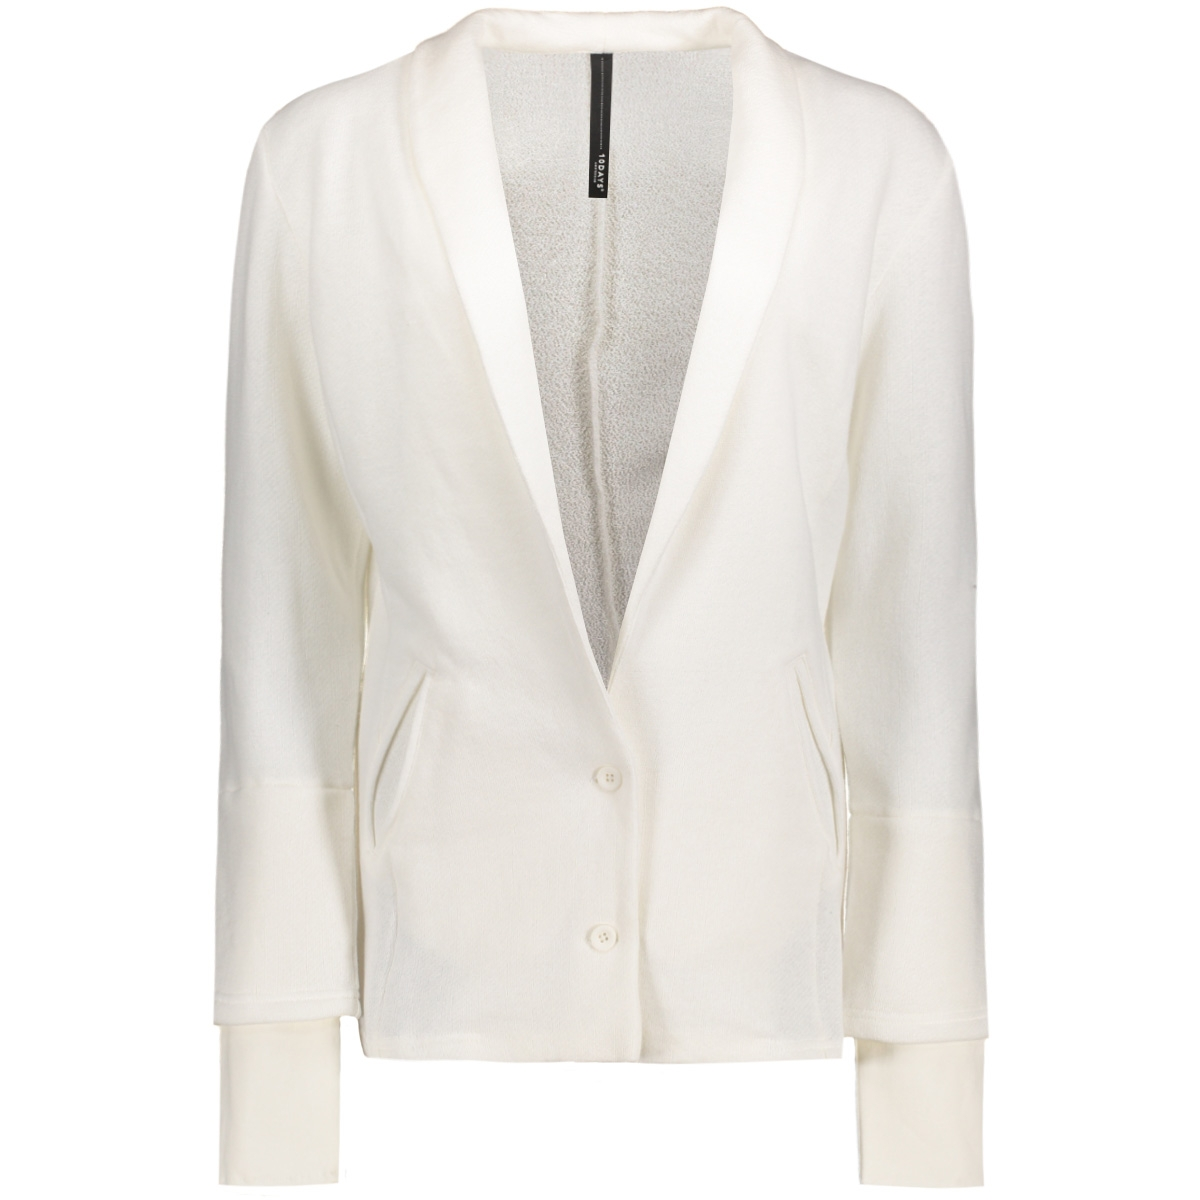 20-506-7101 10 days blazer ecru